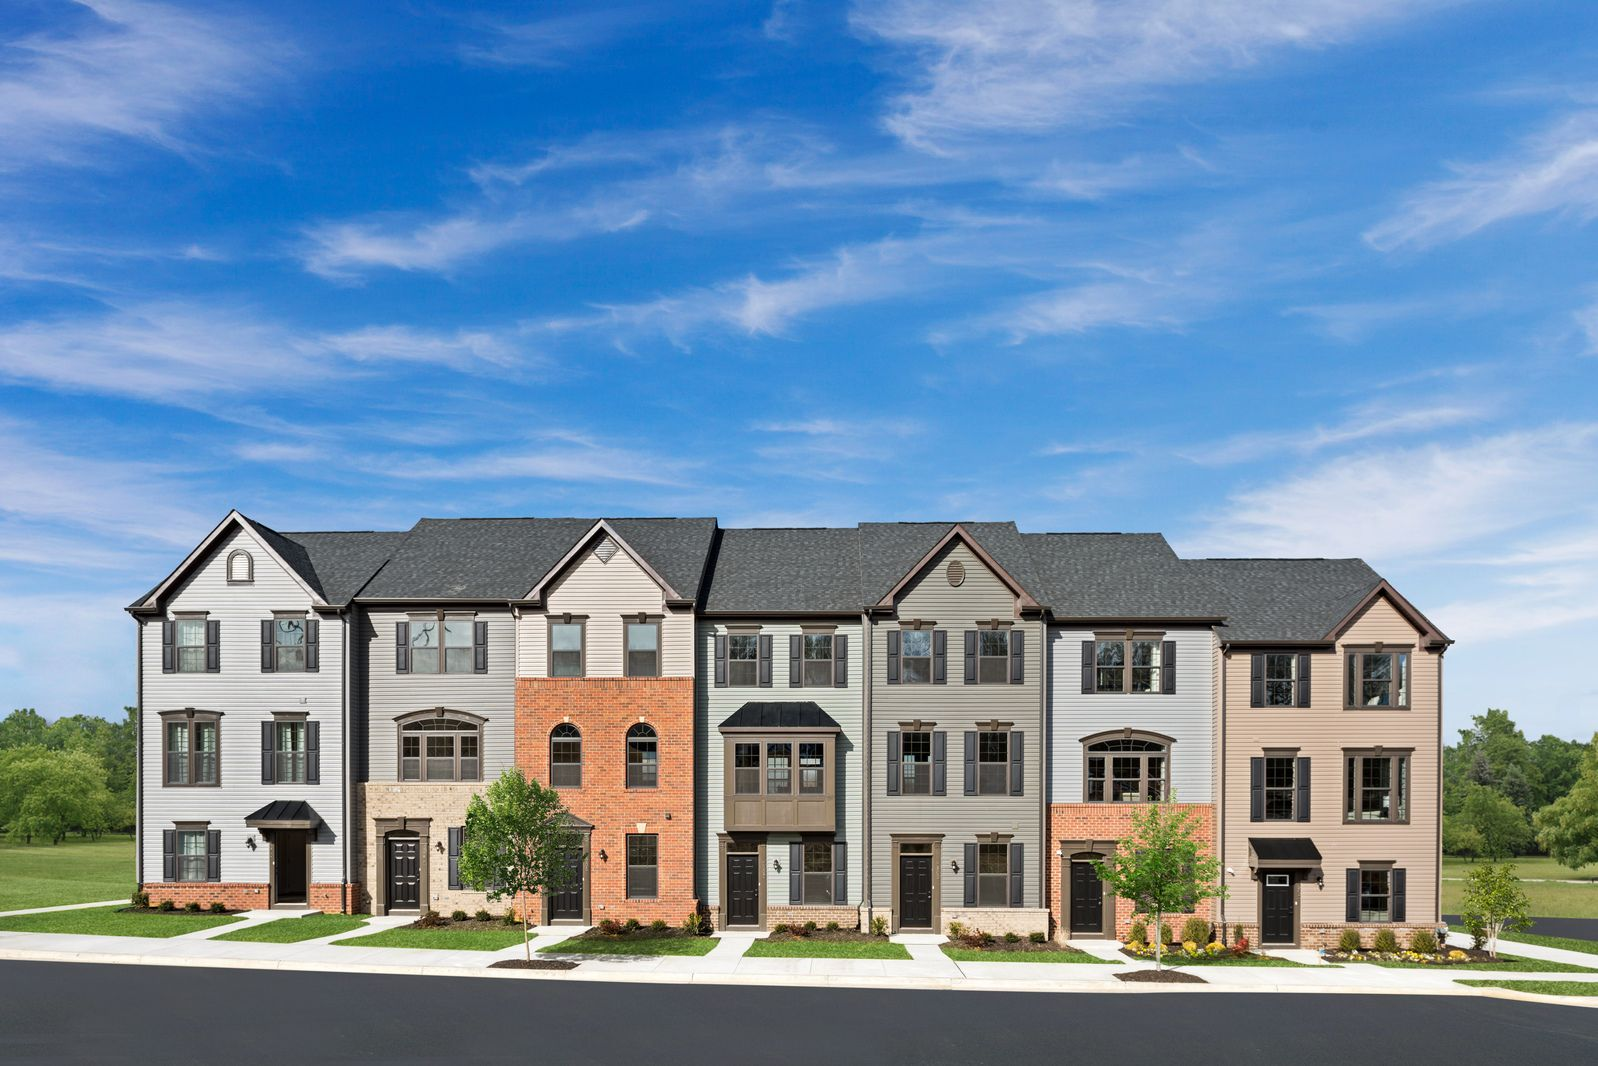 WELCOME TO FREDERICKSBURG PARK TOWNHOMES FROM THE MID $300S:Garage townhomes in the City of Fredericksburg - 1 mile walk or bike ride to Historic Downtown shops, dining, the VRE & 2 miles to I-95!Schedule your visit today.